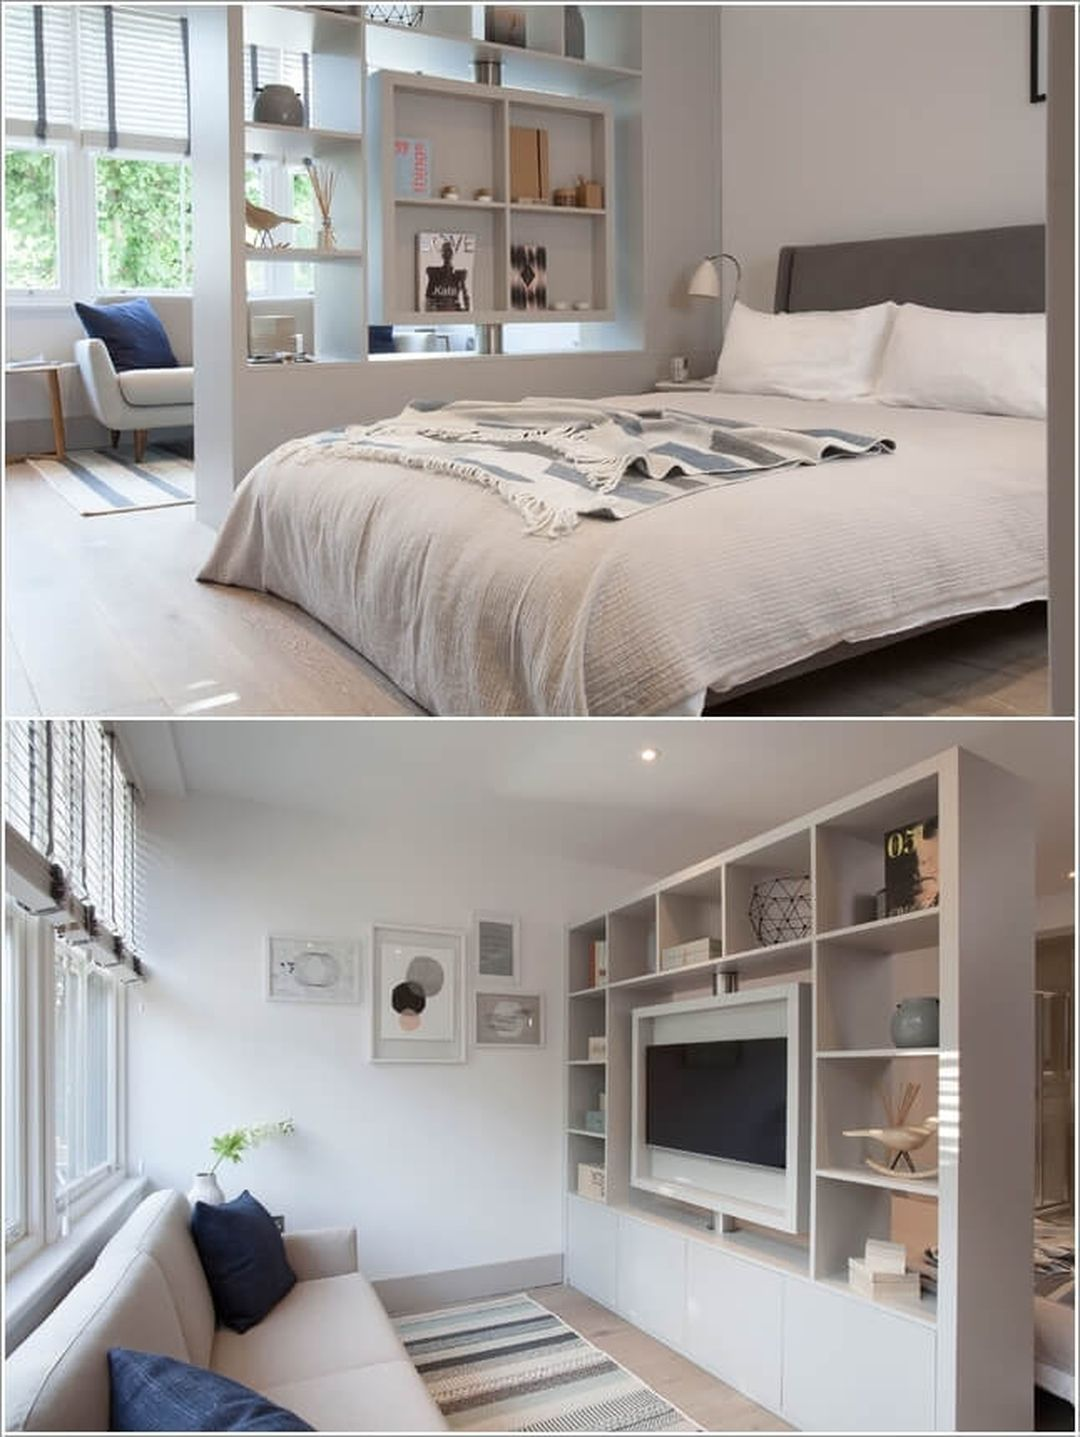 diy small apartment decorating ideas on a budget 40 pinterest